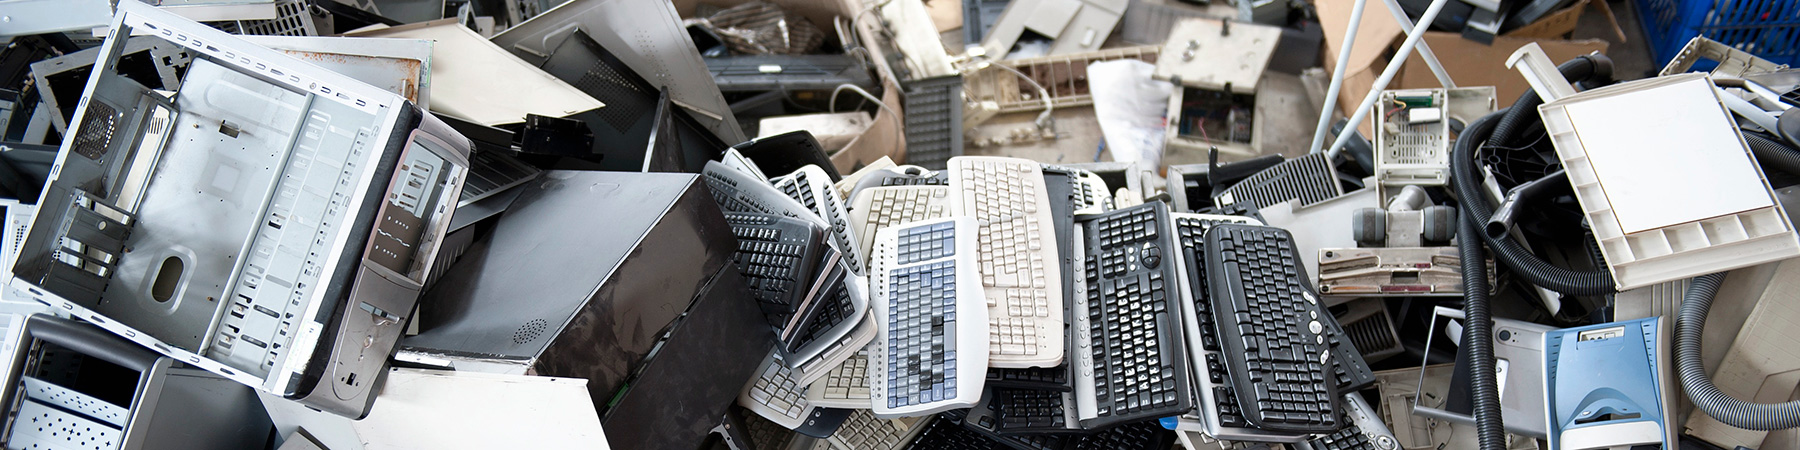 Corporate Document Destruction